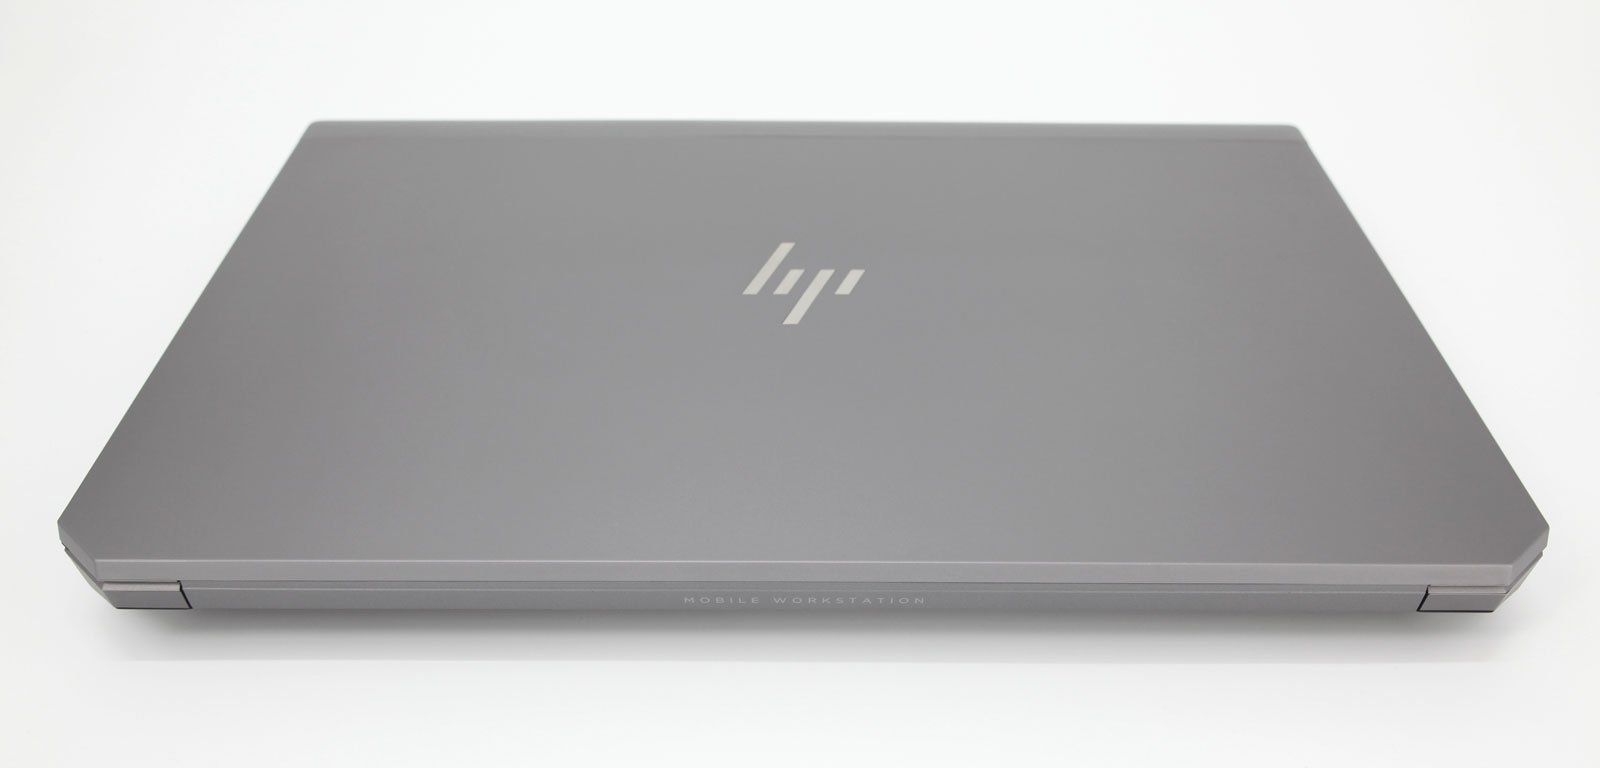 HP ZBook 17 G5 CAD Laptop: Core i7-8850H, 32GB RAM, P4200, 1TB SSD+ HDD Warranty - CruiseTech